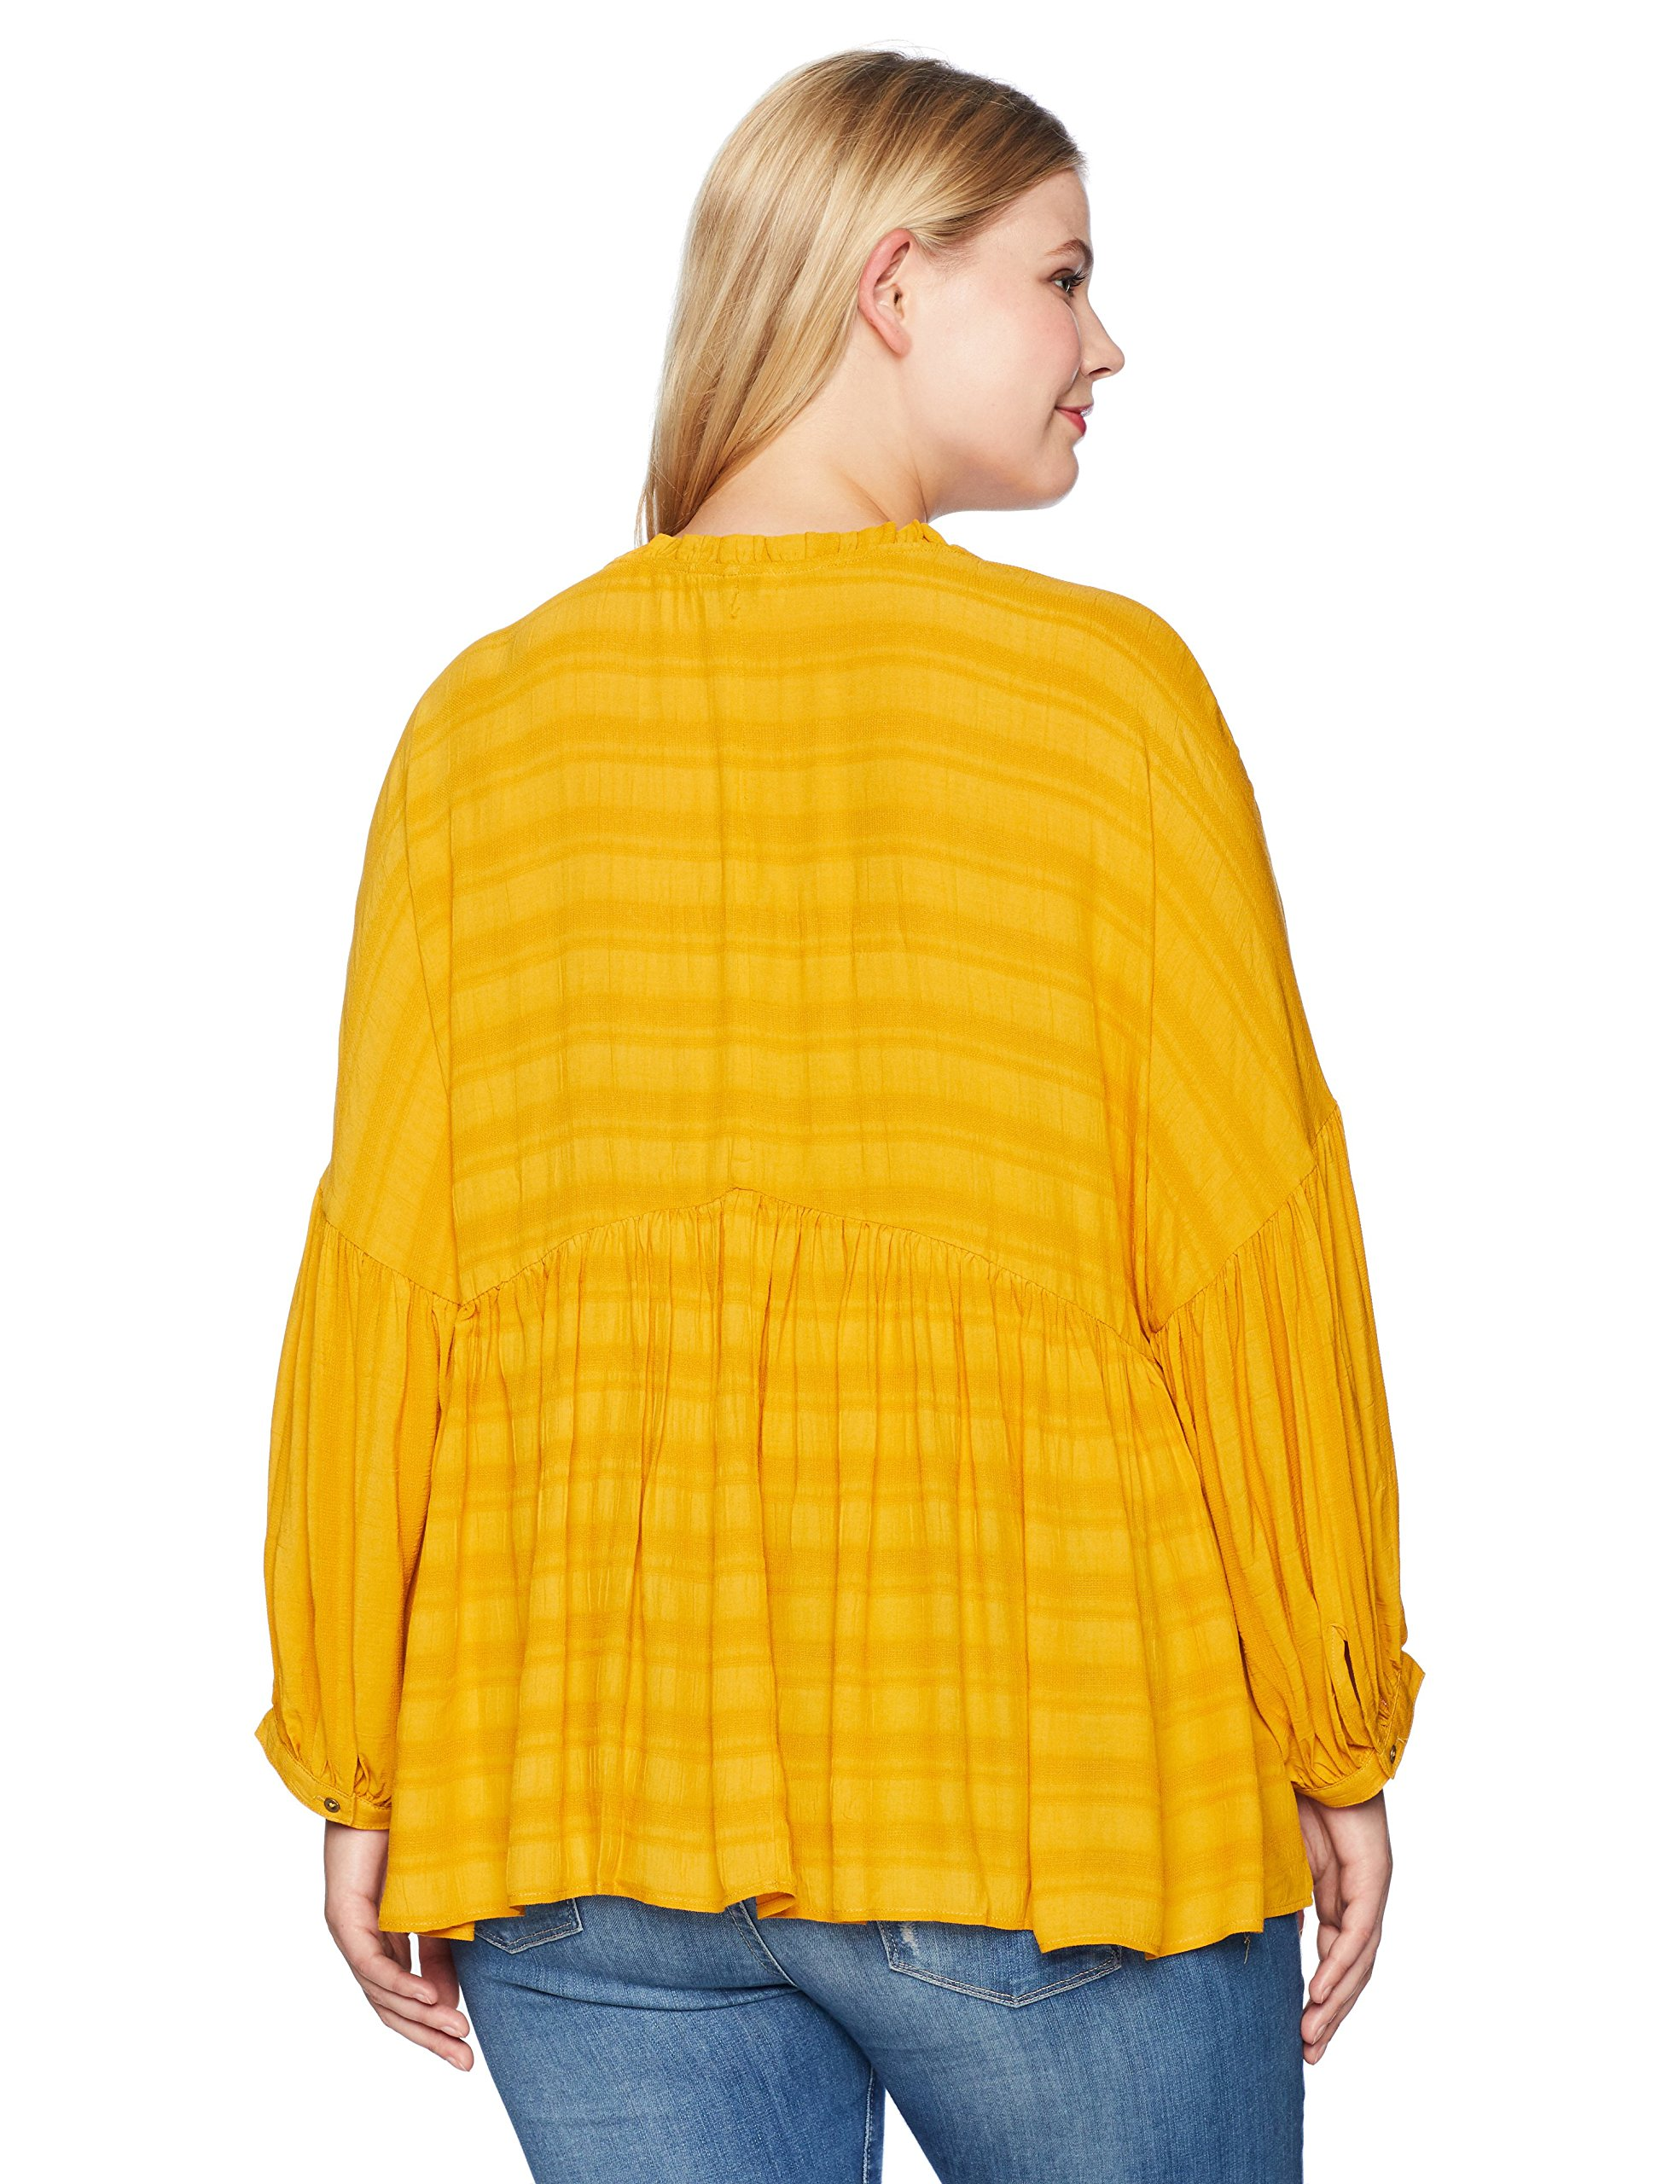 Lucky Brand Women's Plus Size Romantic Peasant Ruffle Top, Golden Spice, 1X by Lucky Brand (Image #2)